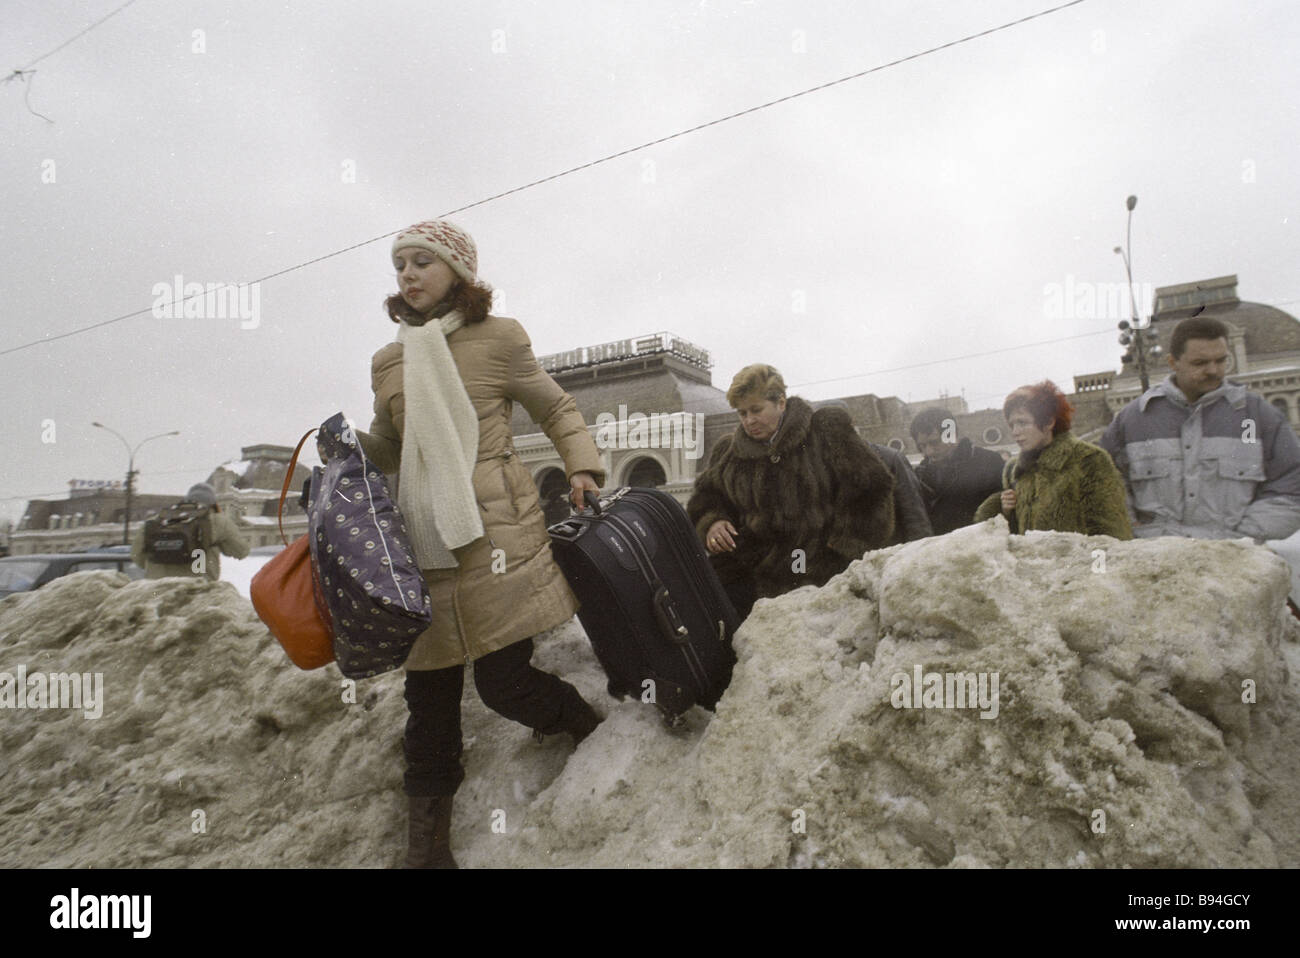 Muscovites and guests of the city struggle through the snowdrifts - Stock Image